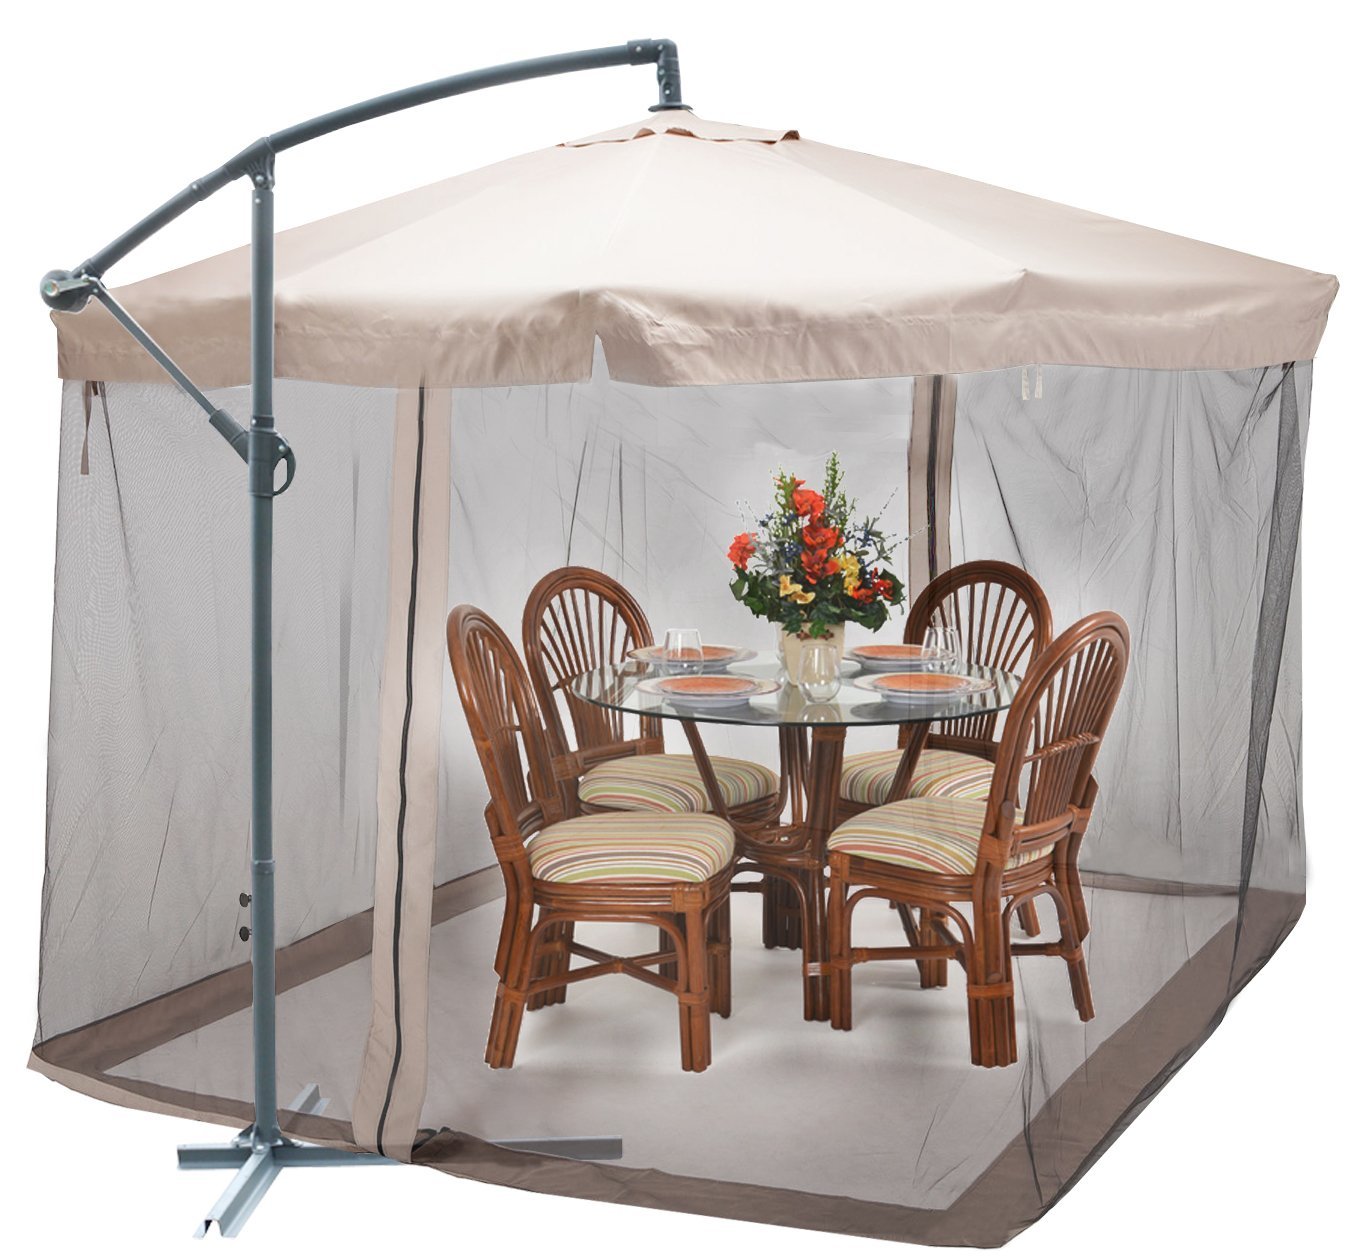 Genial Amazon.com : TMS Offset Umbrella With Removable Mosquito Bug Mesh Net 9FT X  9FT Patio Offset Tilt Post Deck Gazebo Outdoor Shade, Tan : Garden U0026 Outdoor